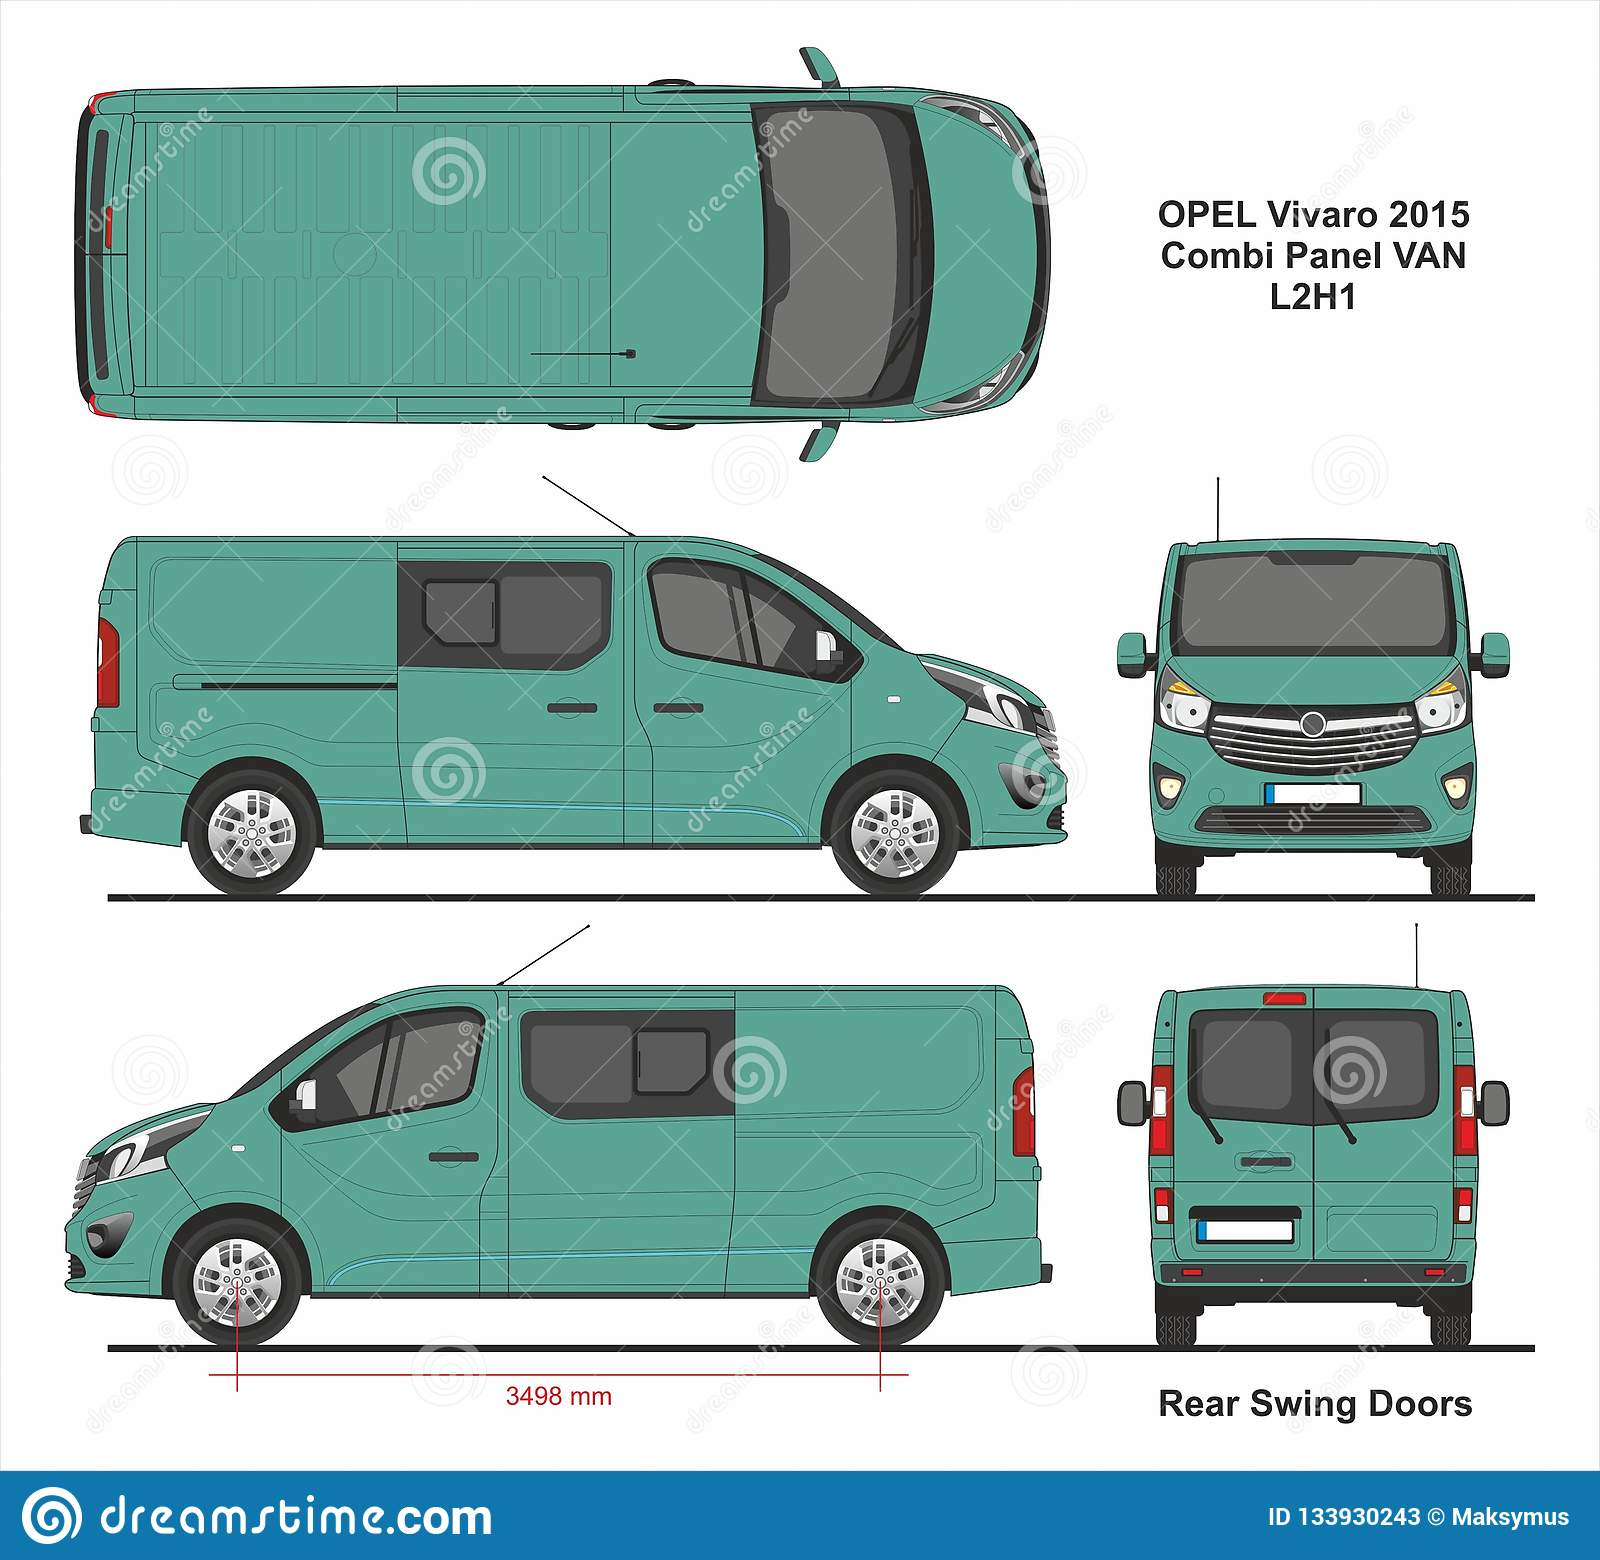 fd966c58e8 Opel Vivaro Combi Panel Van L2H1 Swing Rear Door 2015 detailed template for  design and production of vehicle wraps scale 1 to 10